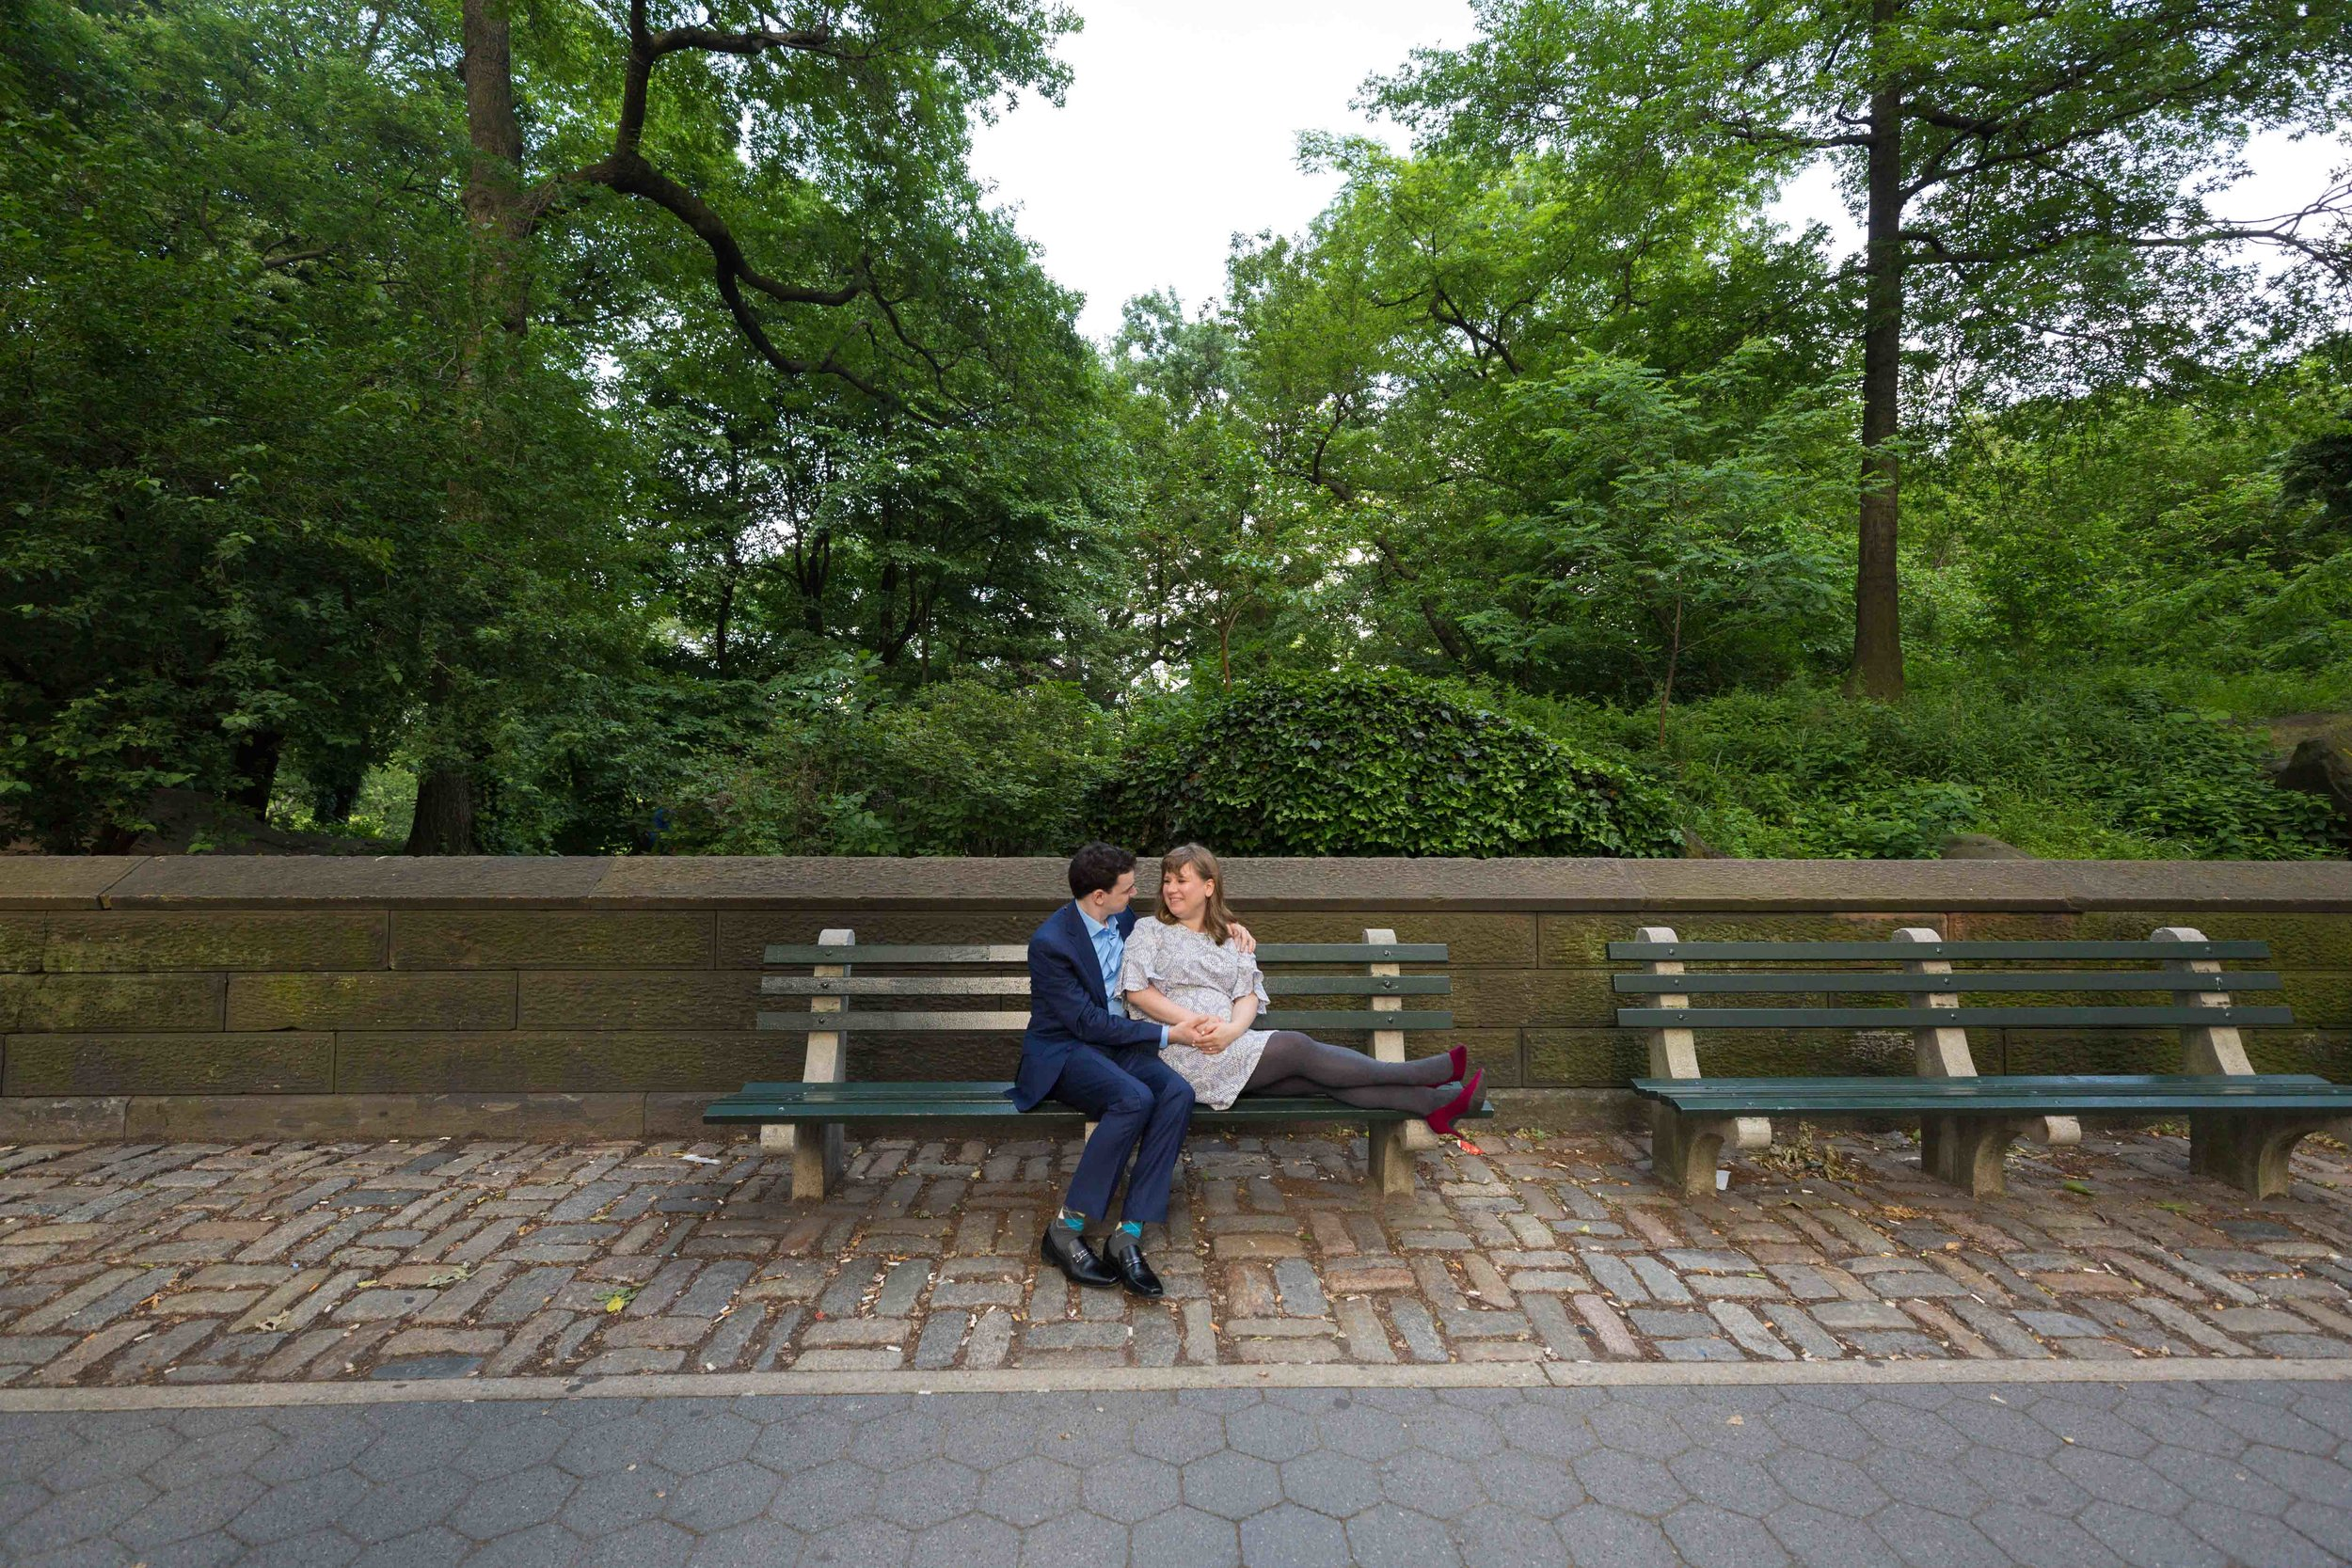 Central Park Engagement Photos Session Shoot NYC Wedding Photographer